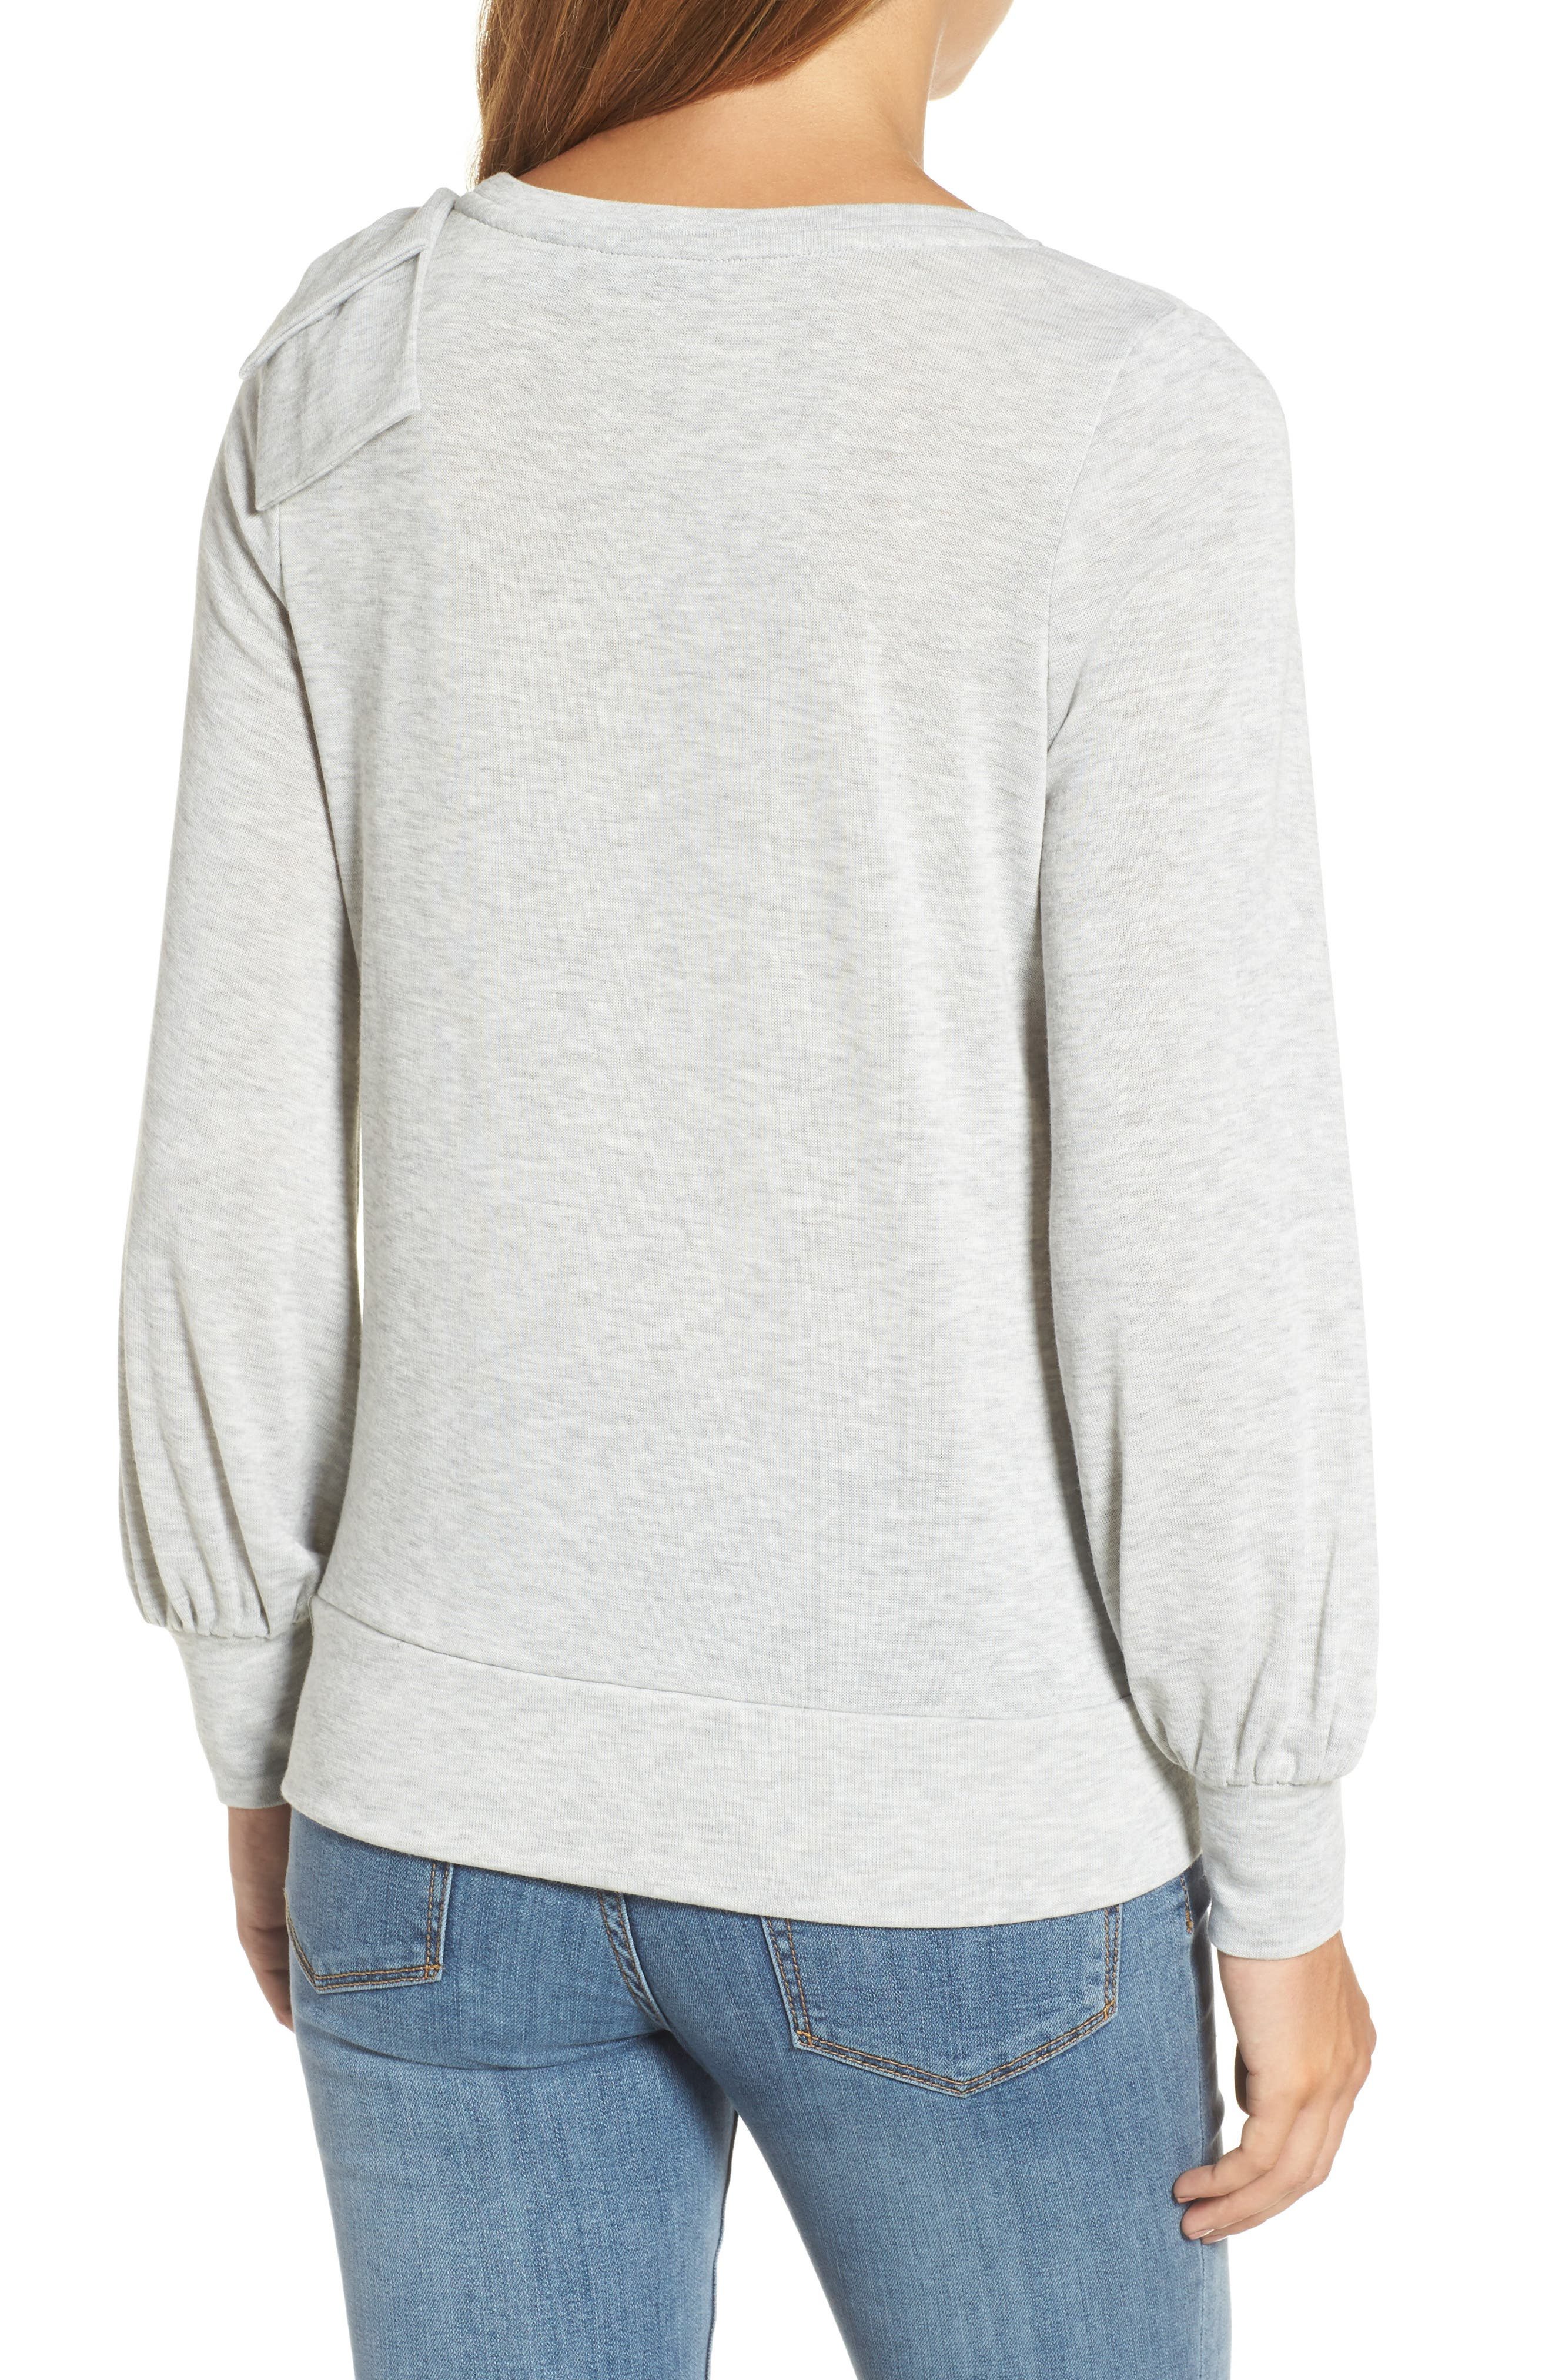 Bow Knit Sweatshirt,                             Alternate thumbnail 2, color,                             Grey Heather